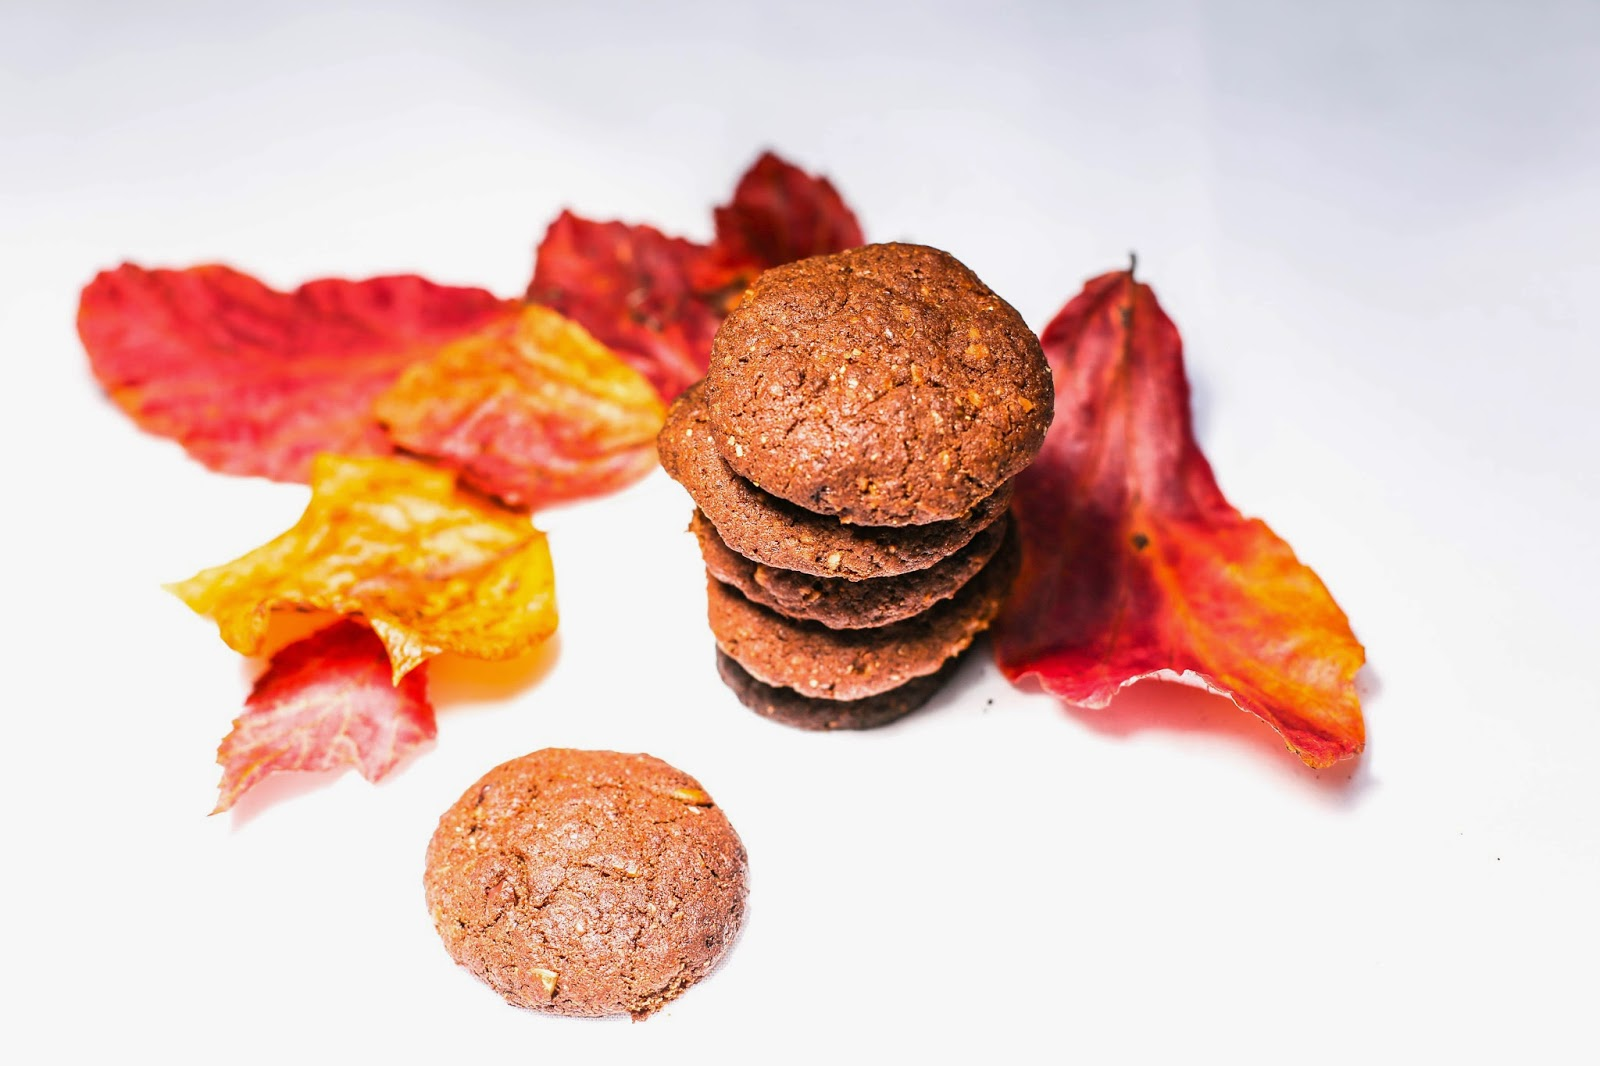 Super crunchy, gluten free and vegan chocolate cookies